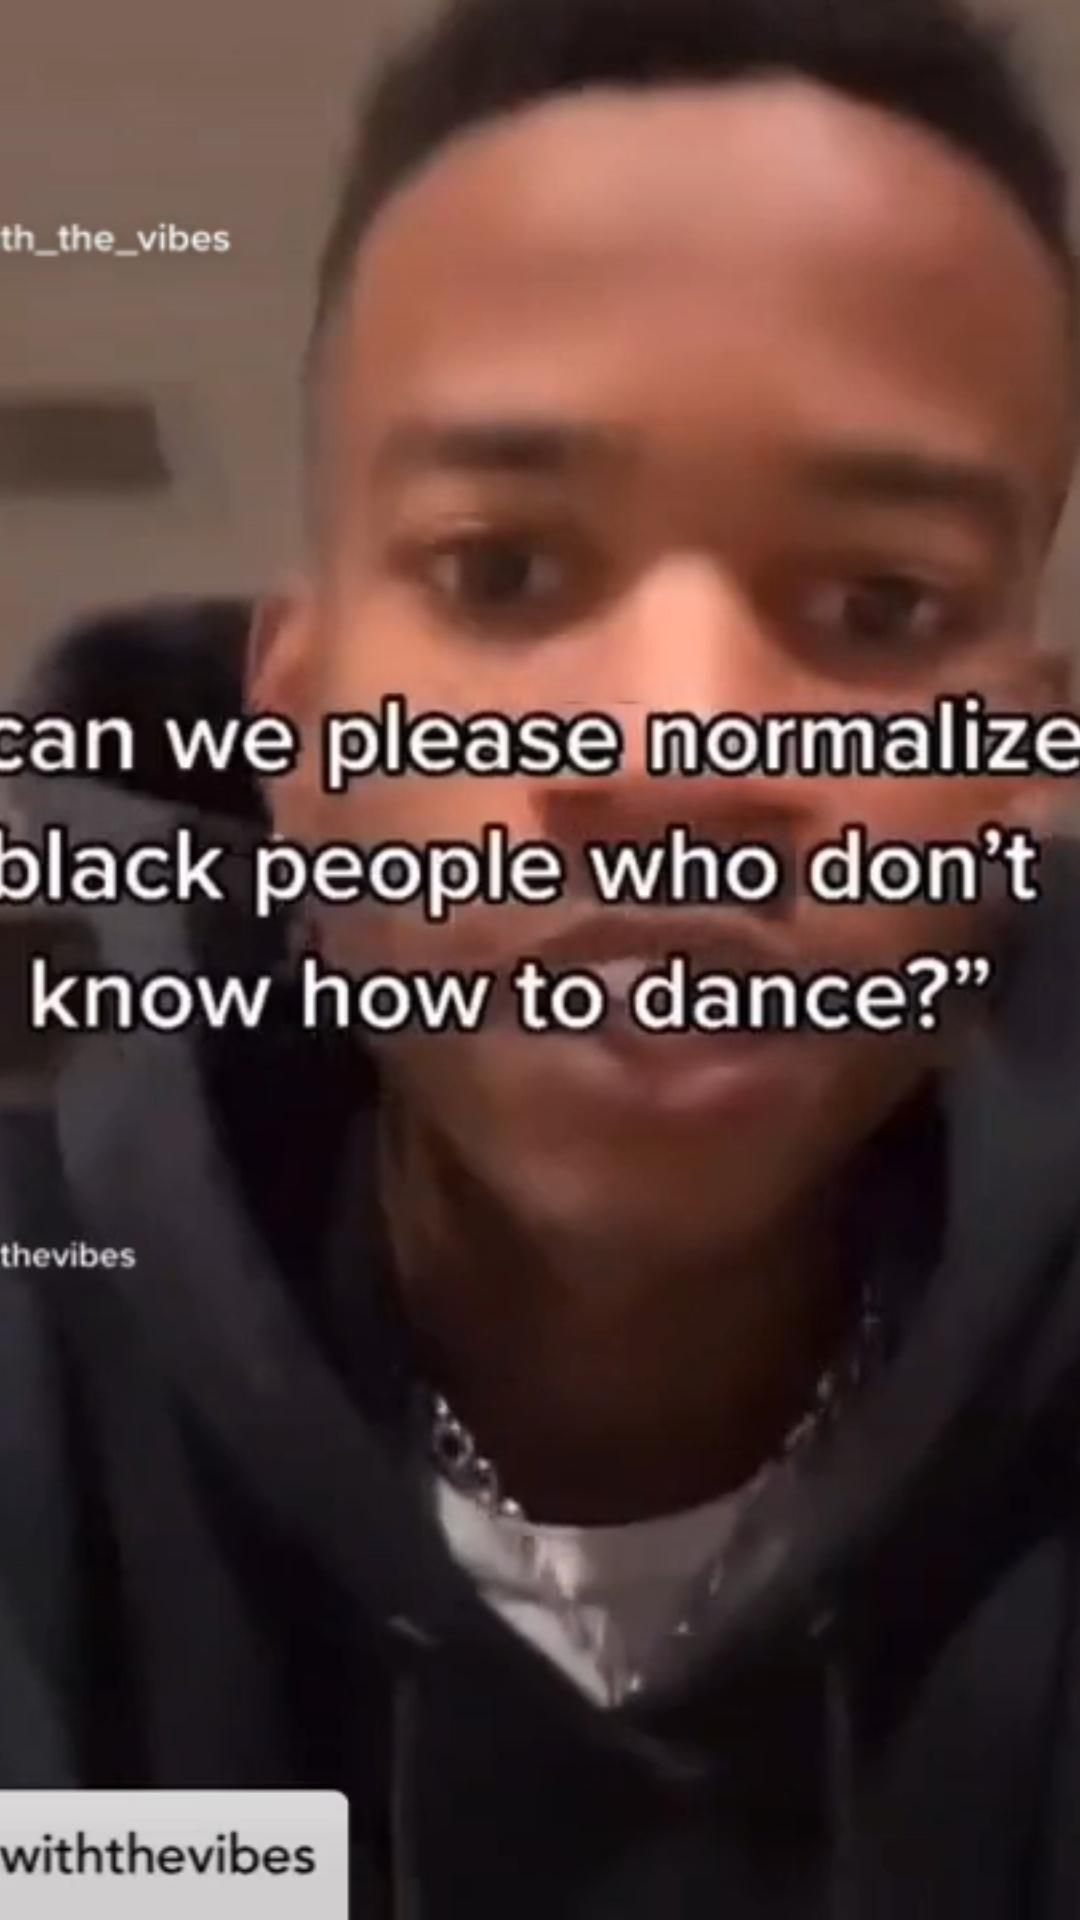 Can we normalize black people who don't know how to dance?